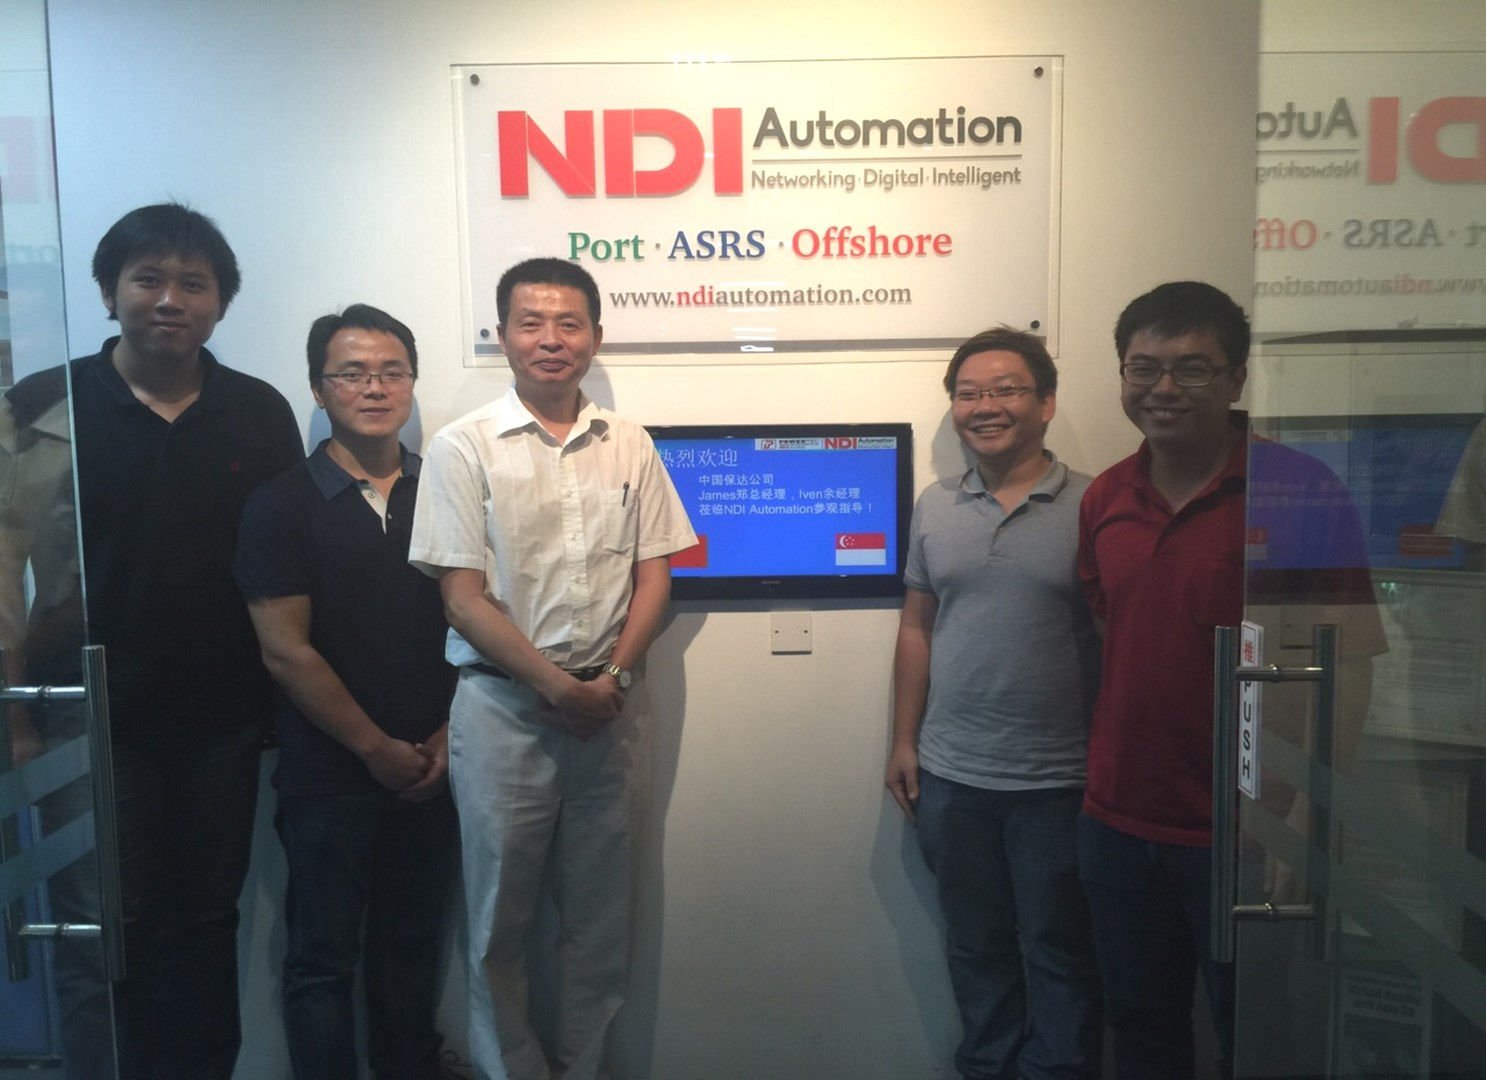 Business Visits - NDI Automation